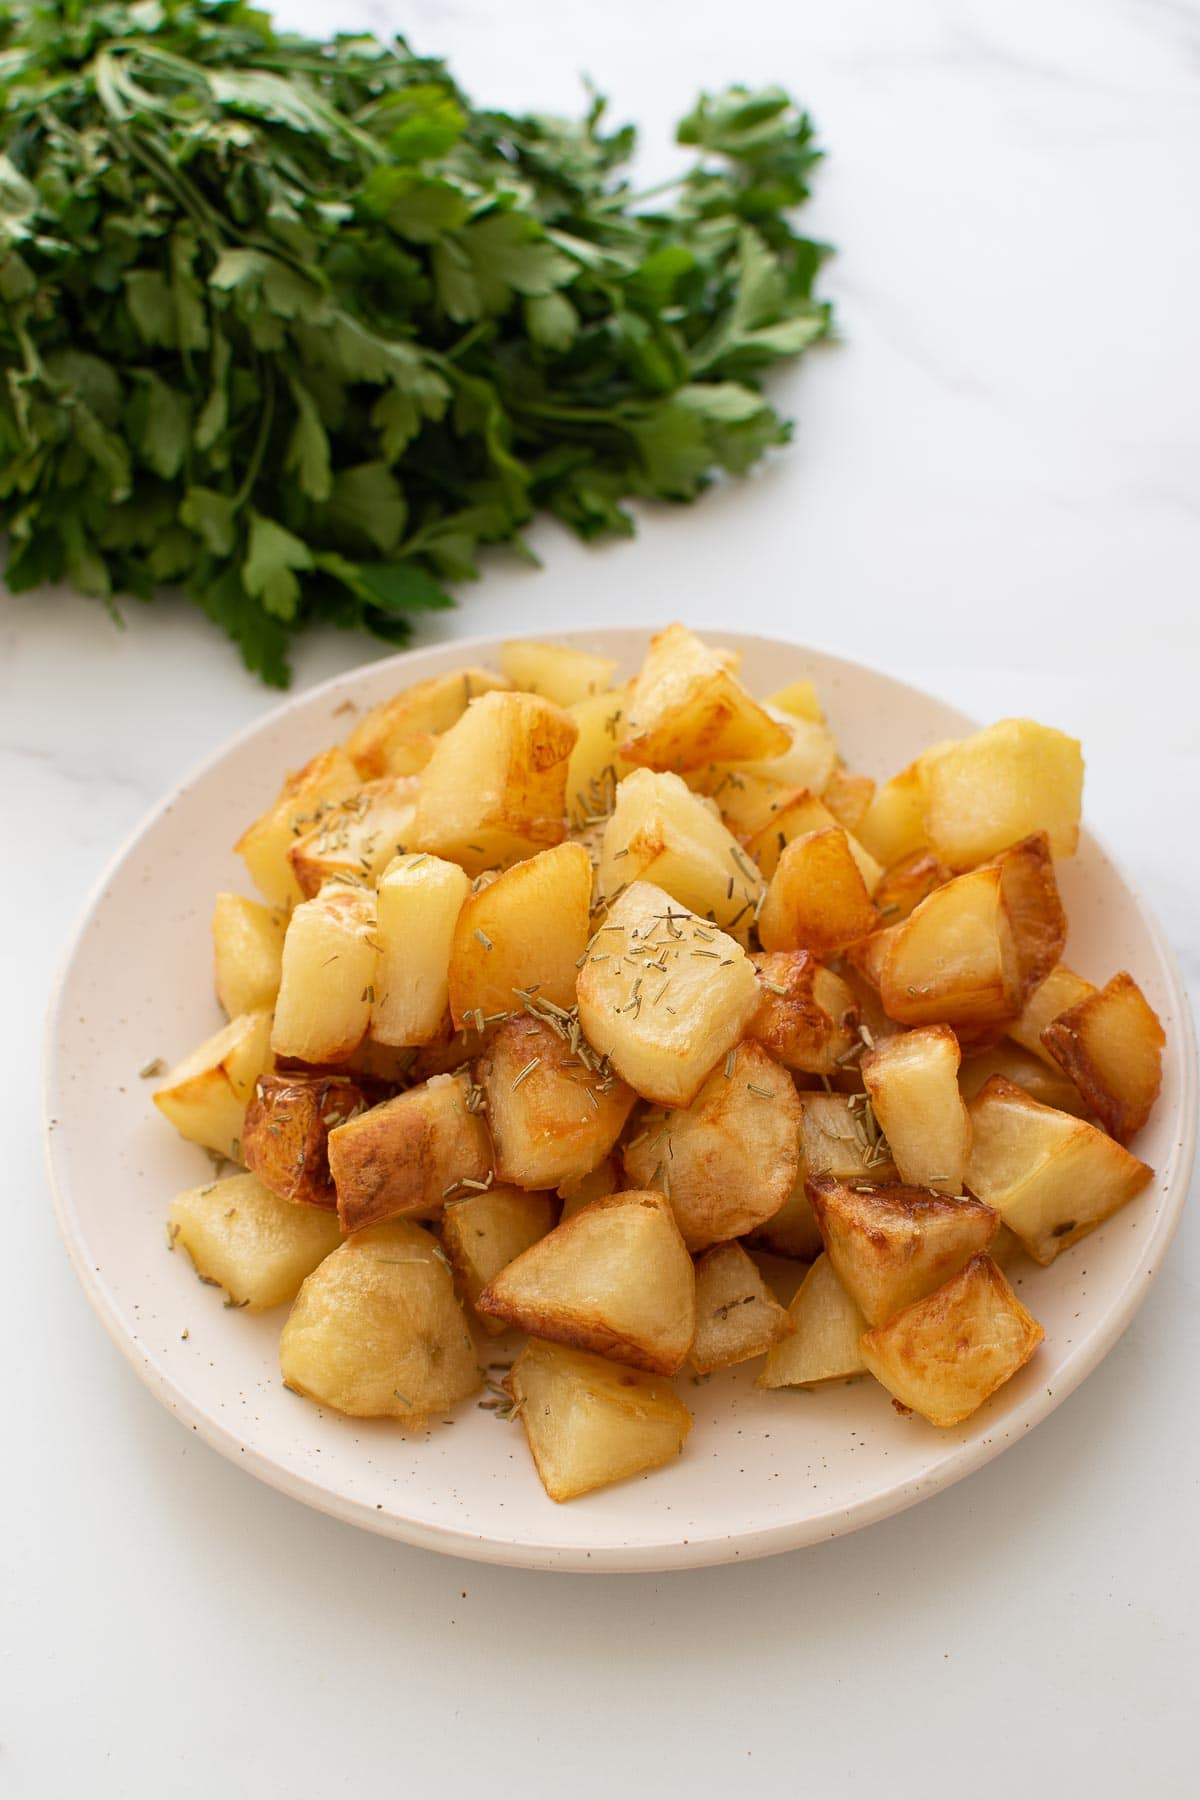 Parmentier potatoes on a plate.